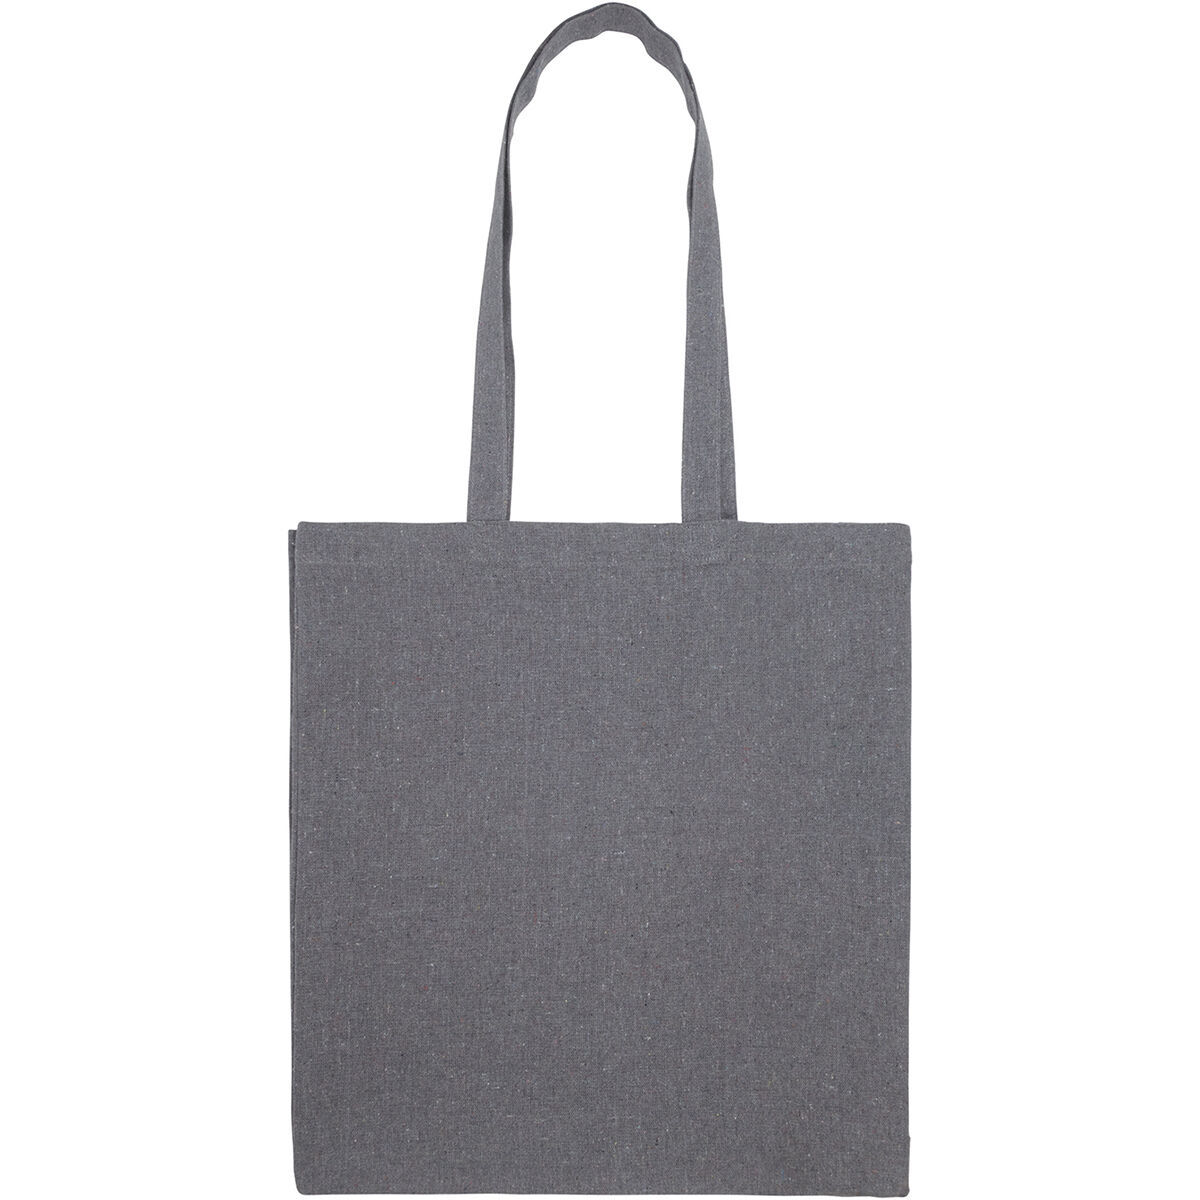 Recycled Cotton Big Tote Bag with Gusset